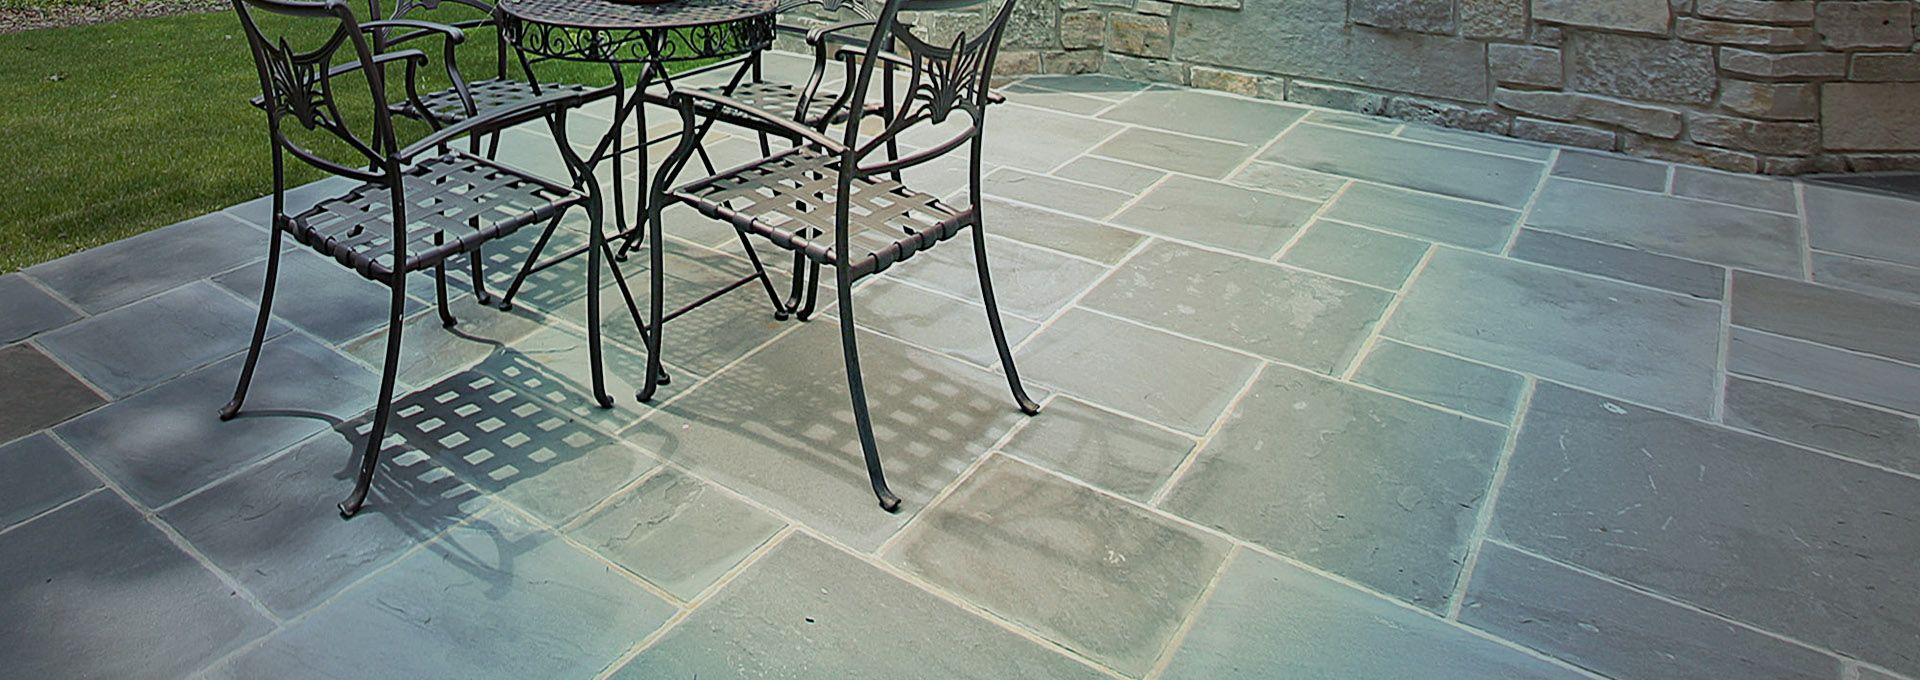 Patio Design Green Acre Sod Tulsa Sod Farm Store Outdoor Living